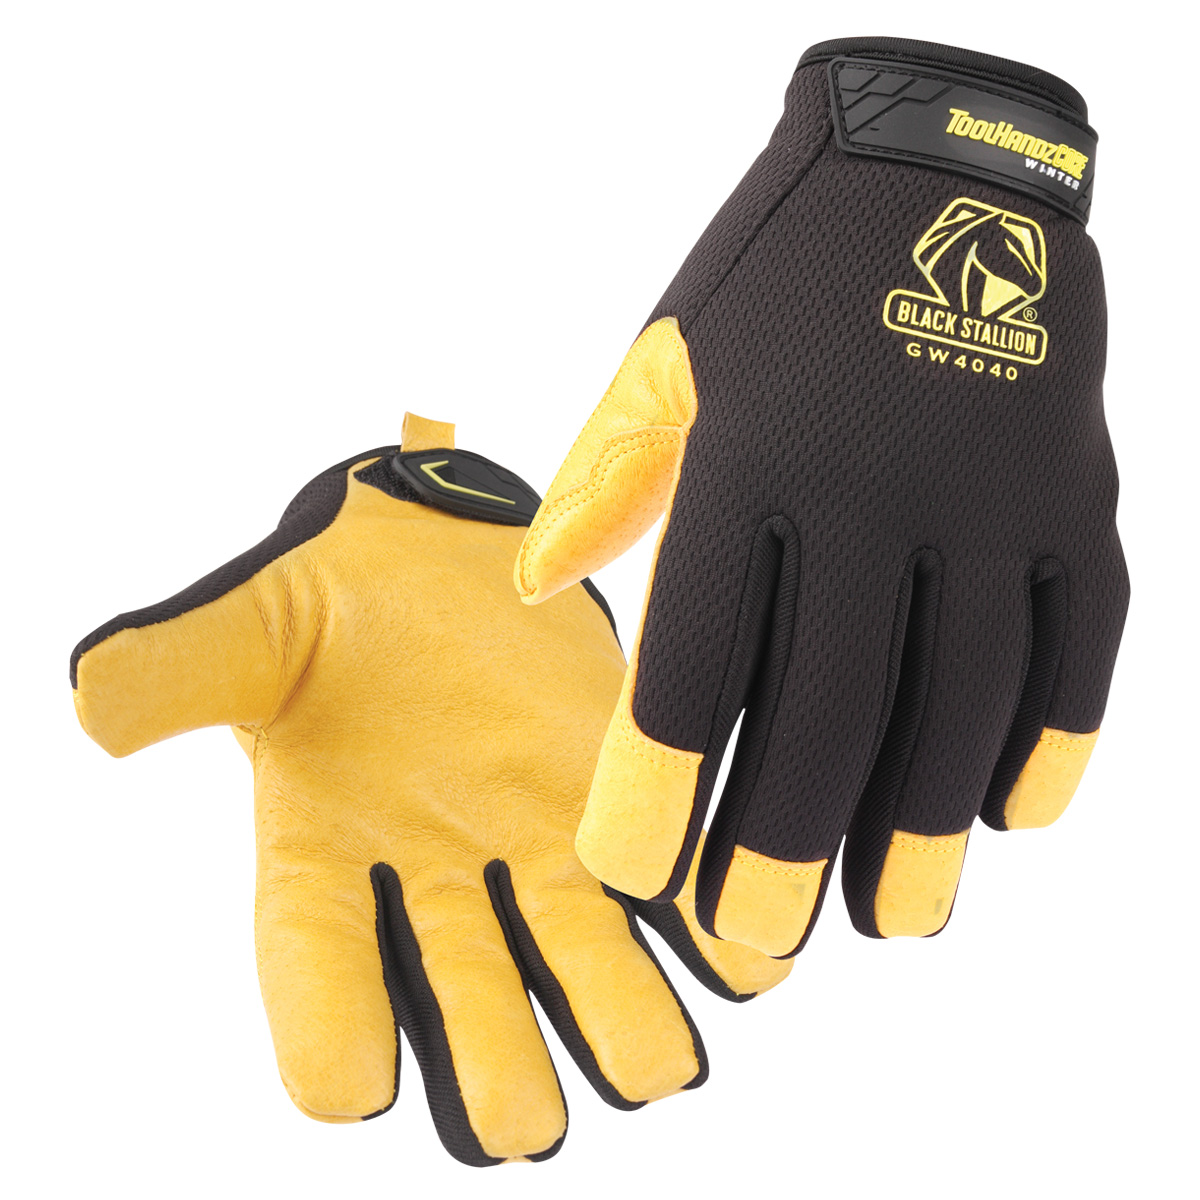 ToolHandz CORE Pig Grain Palm Mech. Glove Winter #GW4040-BY